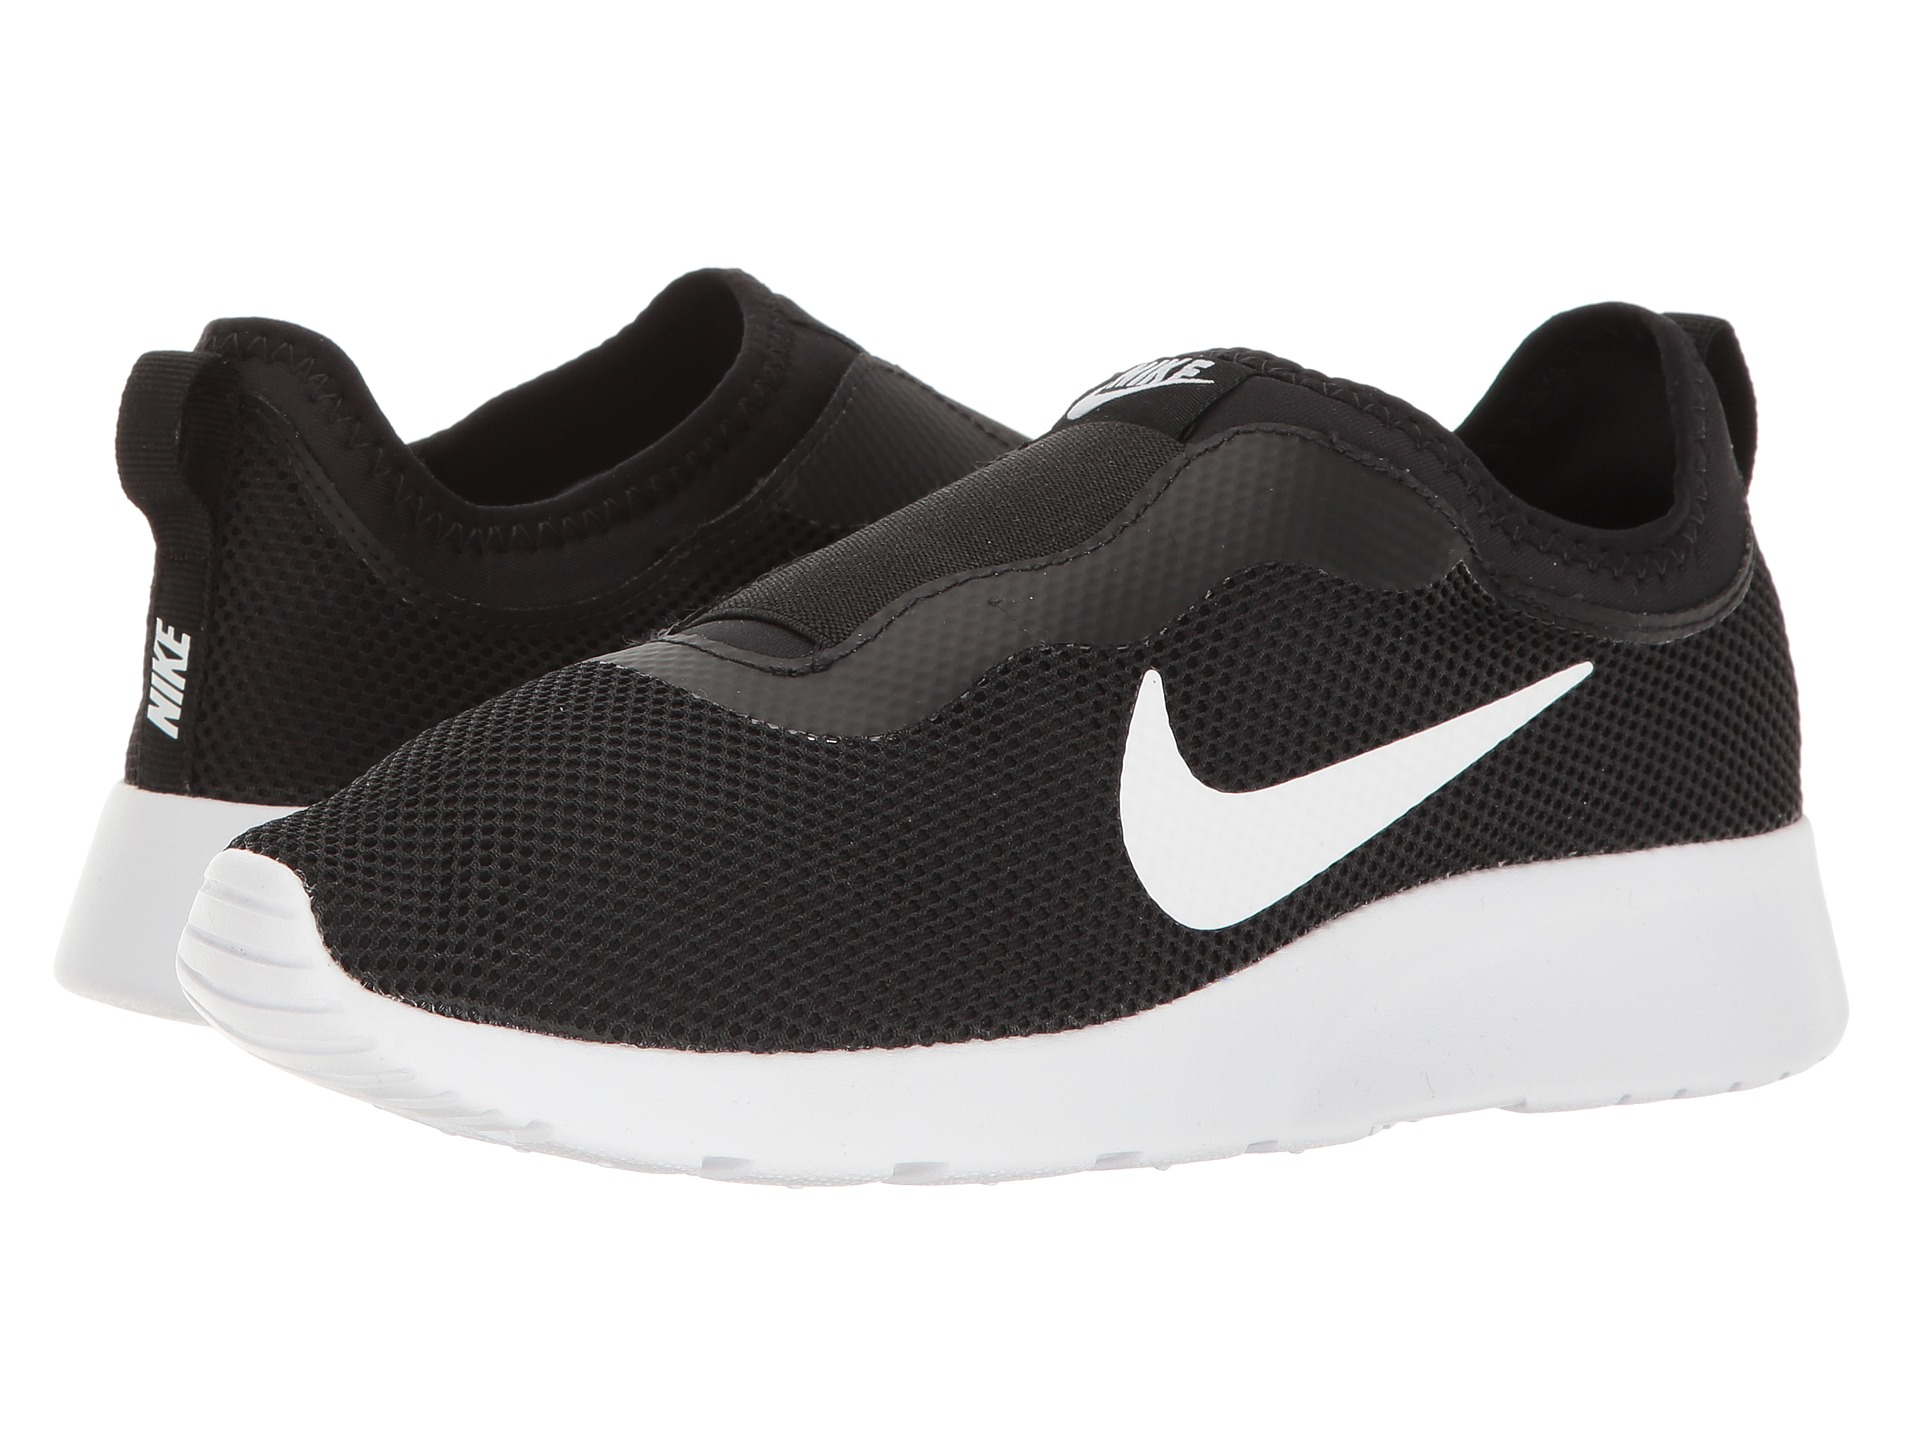 nike tanjun slip on at. Black Bedroom Furniture Sets. Home Design Ideas